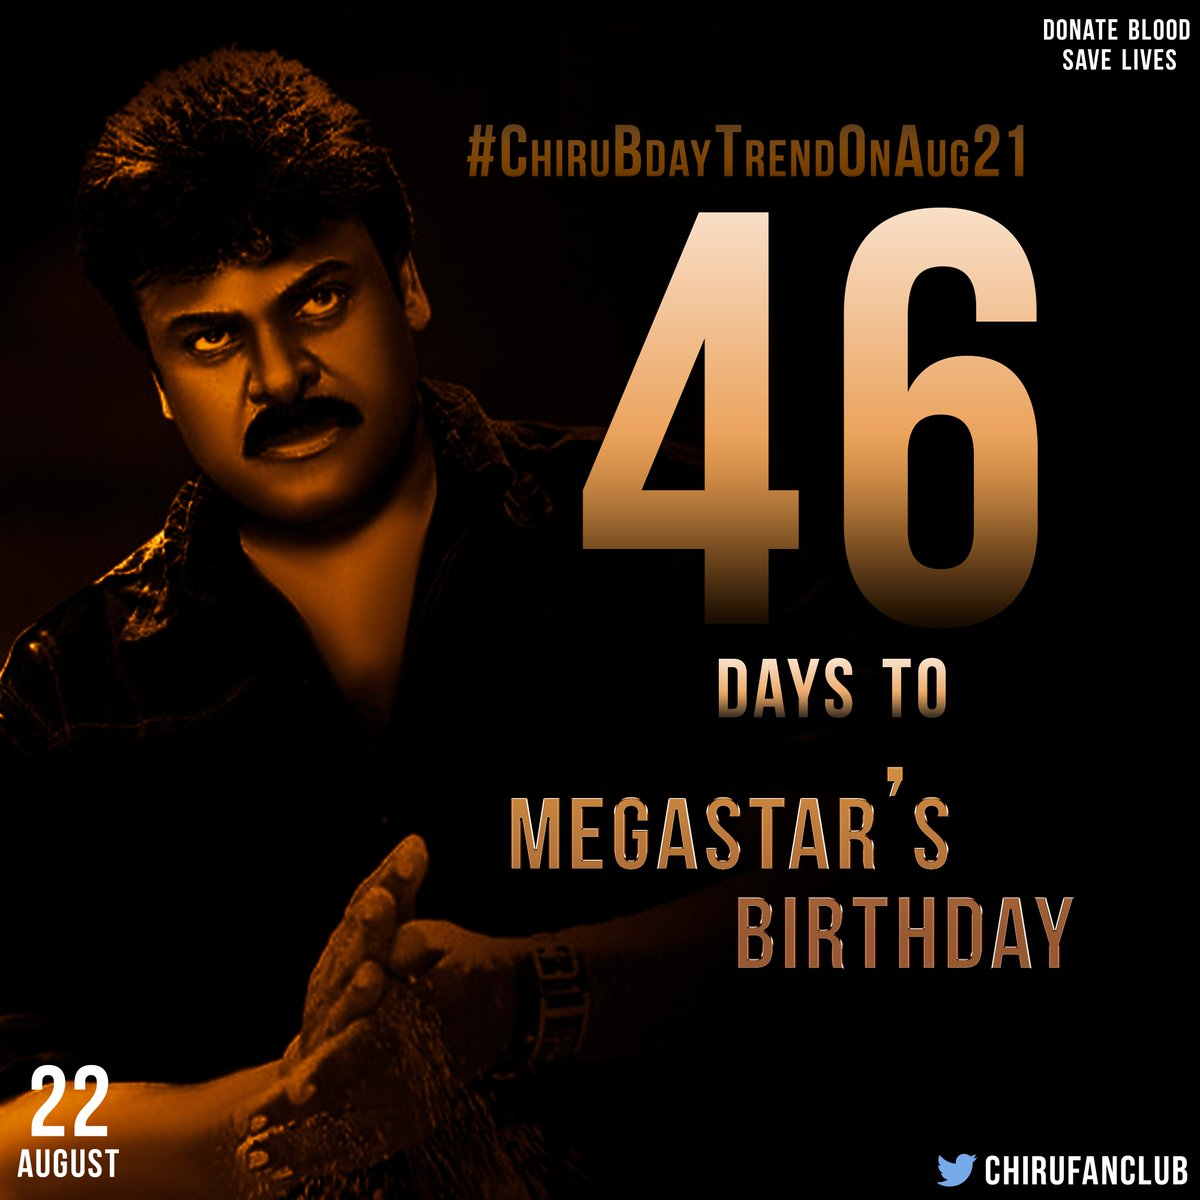 More 46 Day's to go for our Boss @KChiruTweets Birthday #MegastarChiranjeevi  #ChiruBdayTrendOnAug21pic.twitter.com/L0RE80BJxp